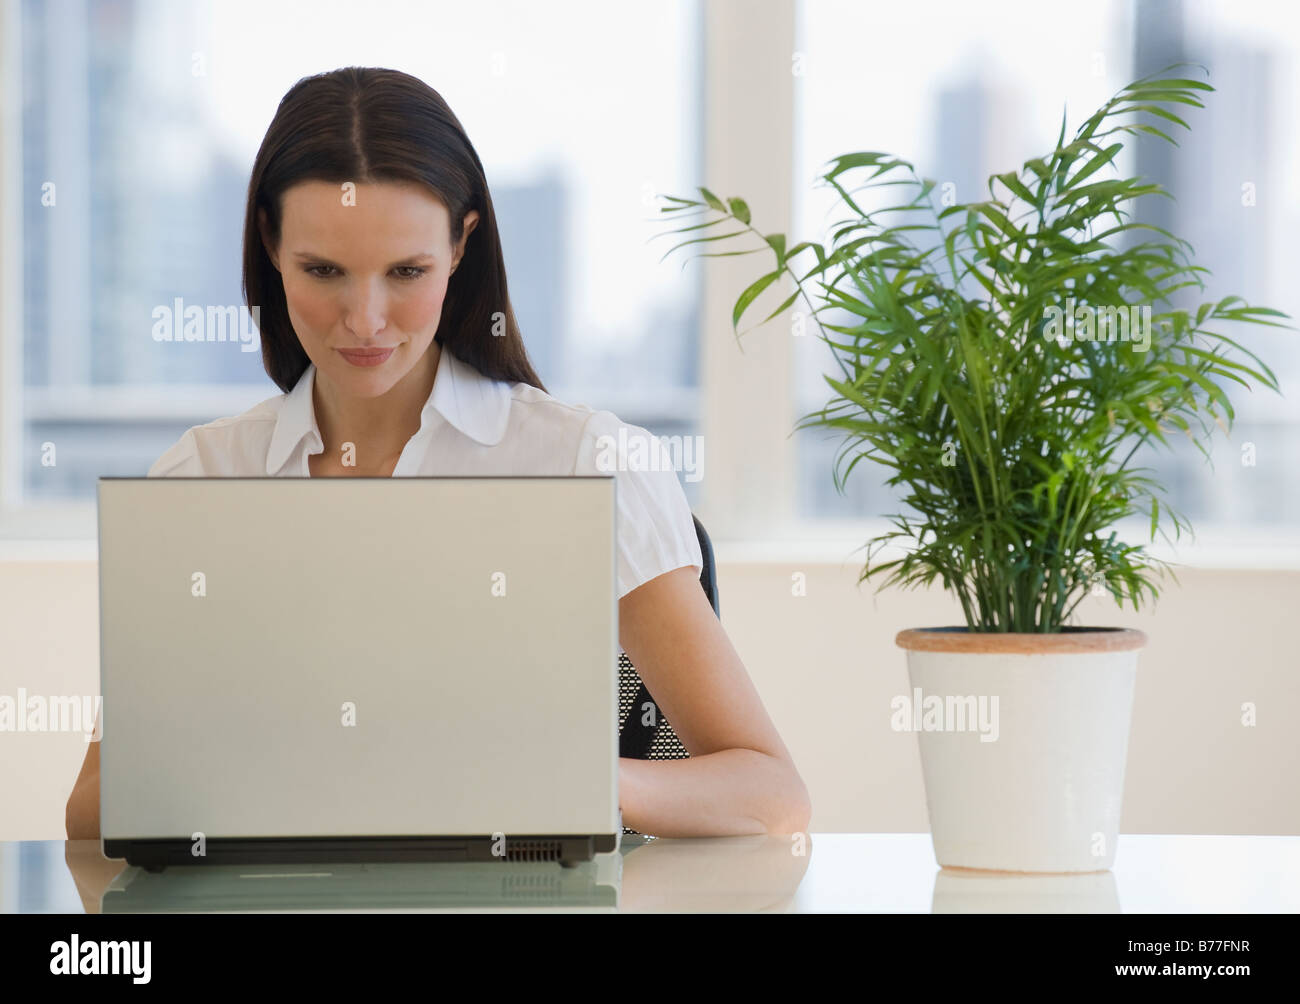 Businesswoman working on laptop next to plant - Stock Image